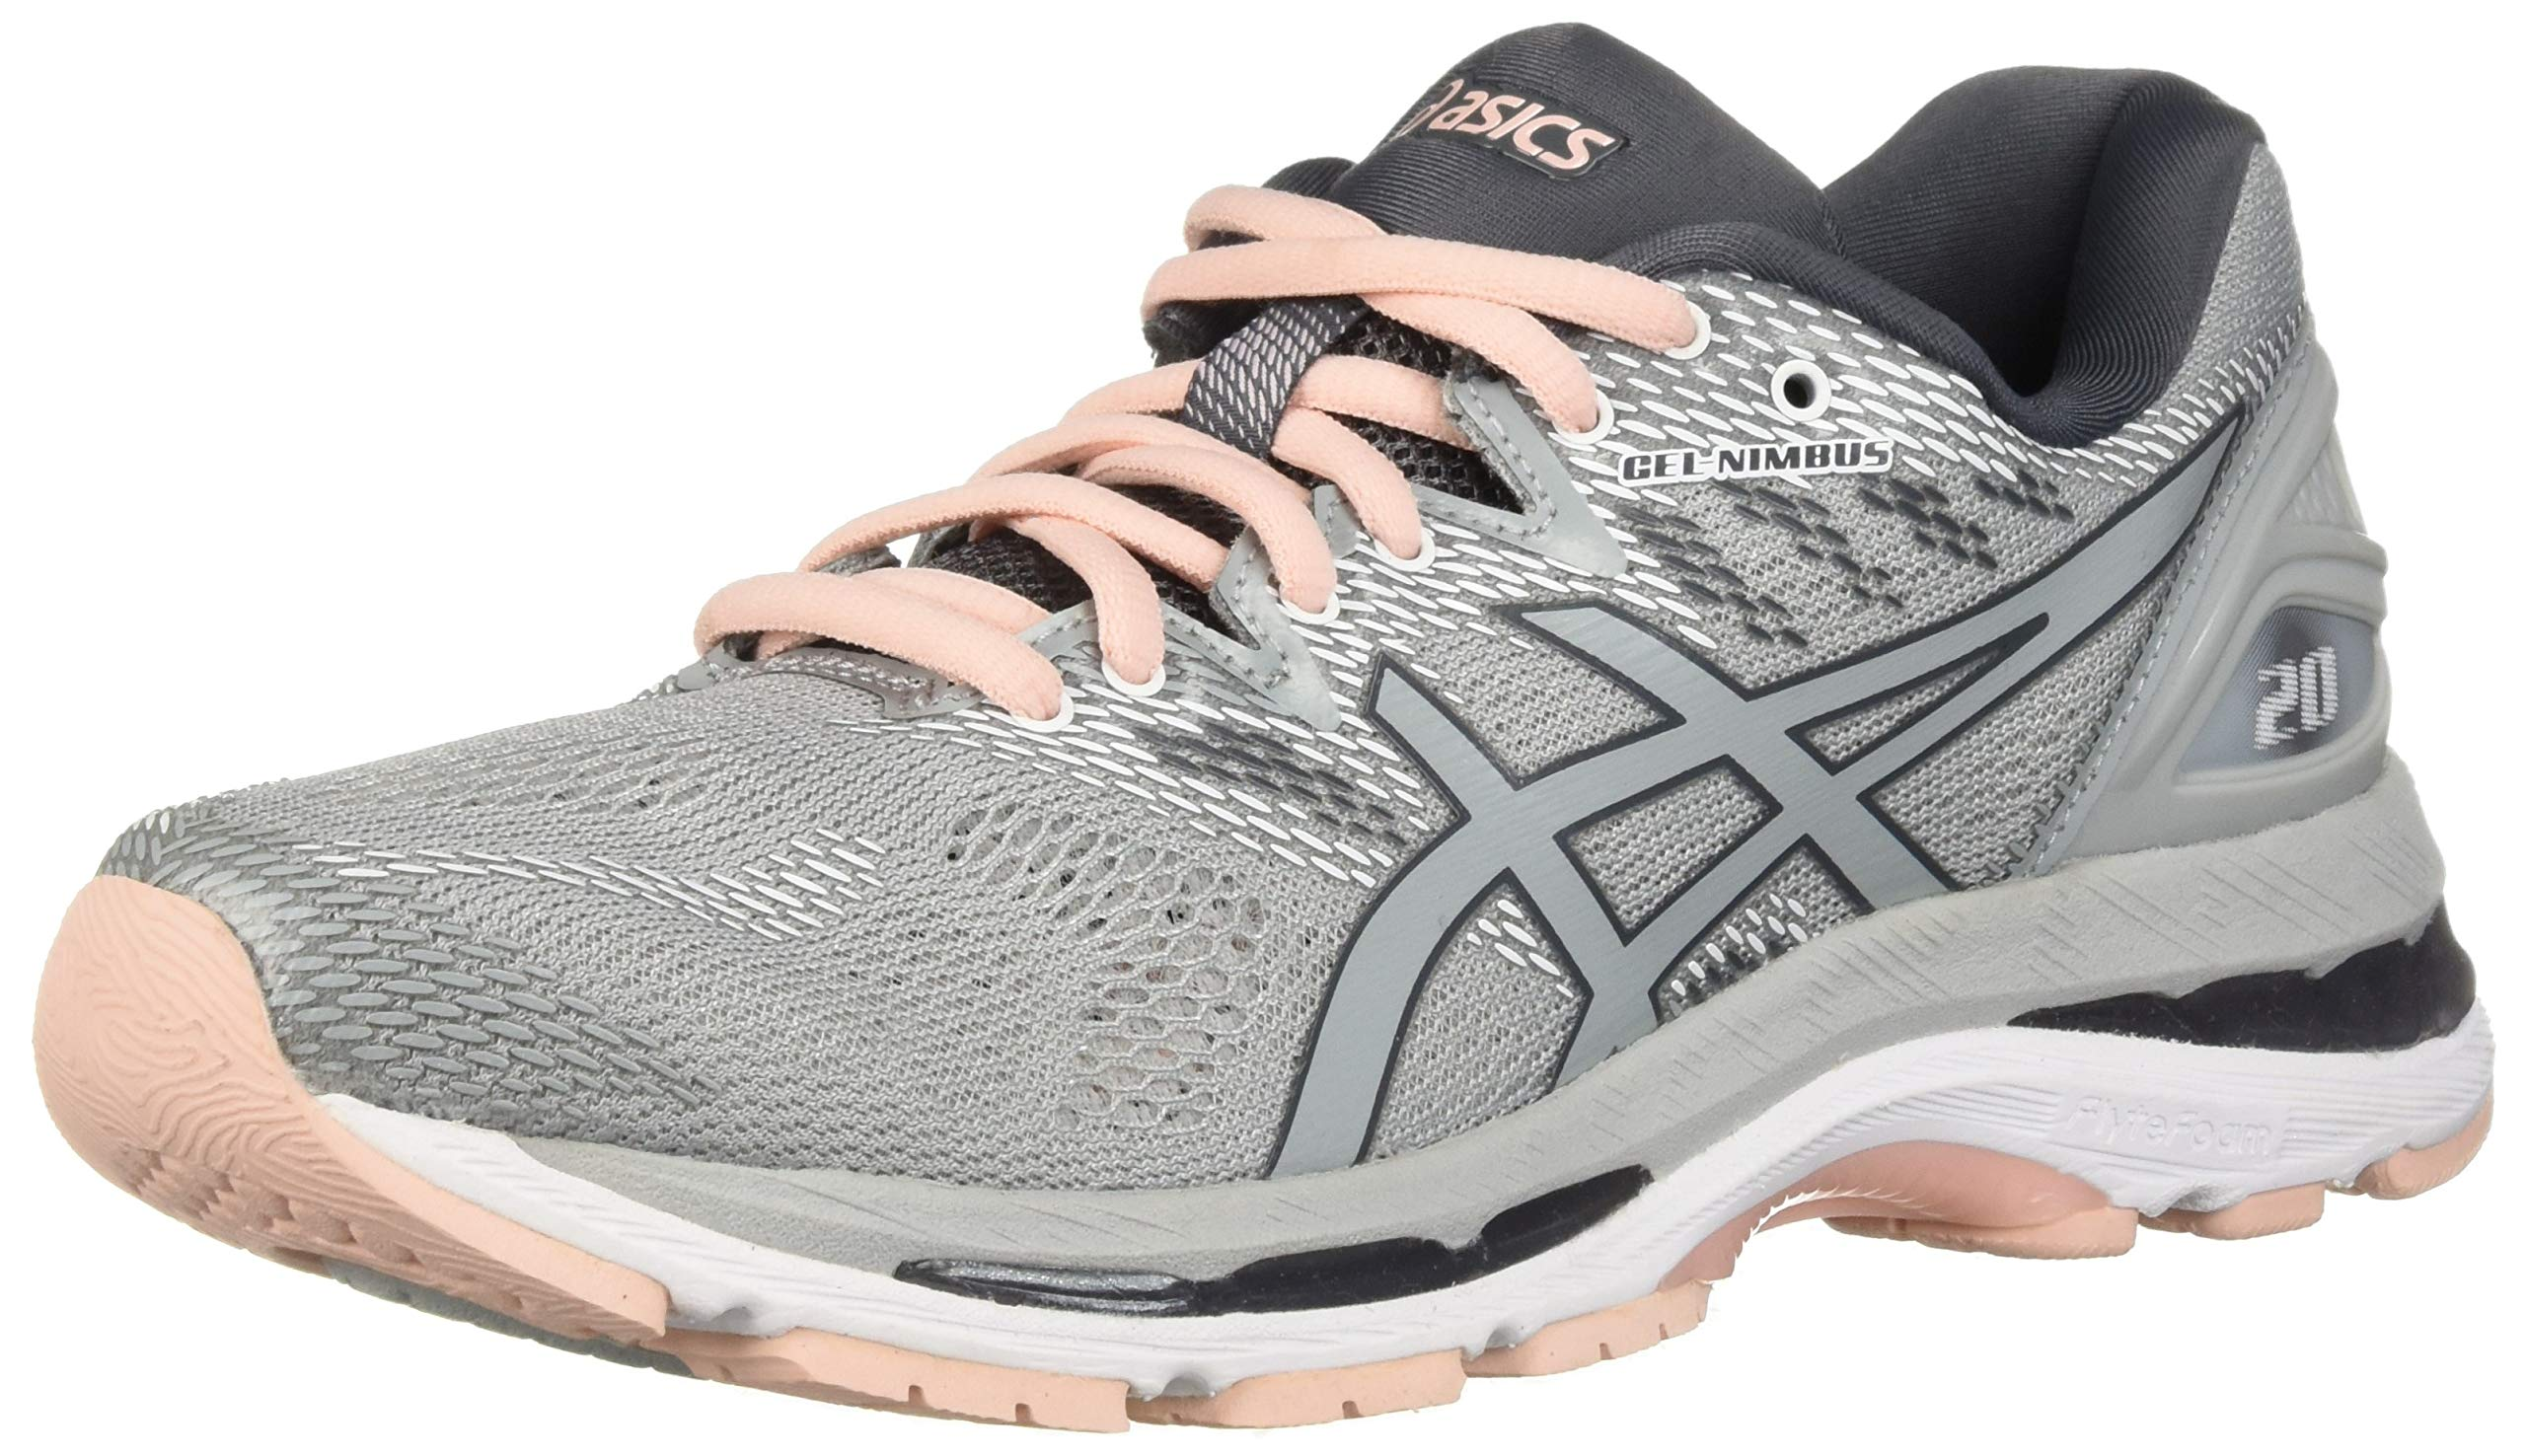 ASICS Women's Gel-Nimbus 20 Running Shoe, mid grey/mid grey/seashell pink, 5.5 Medium US by ASICS